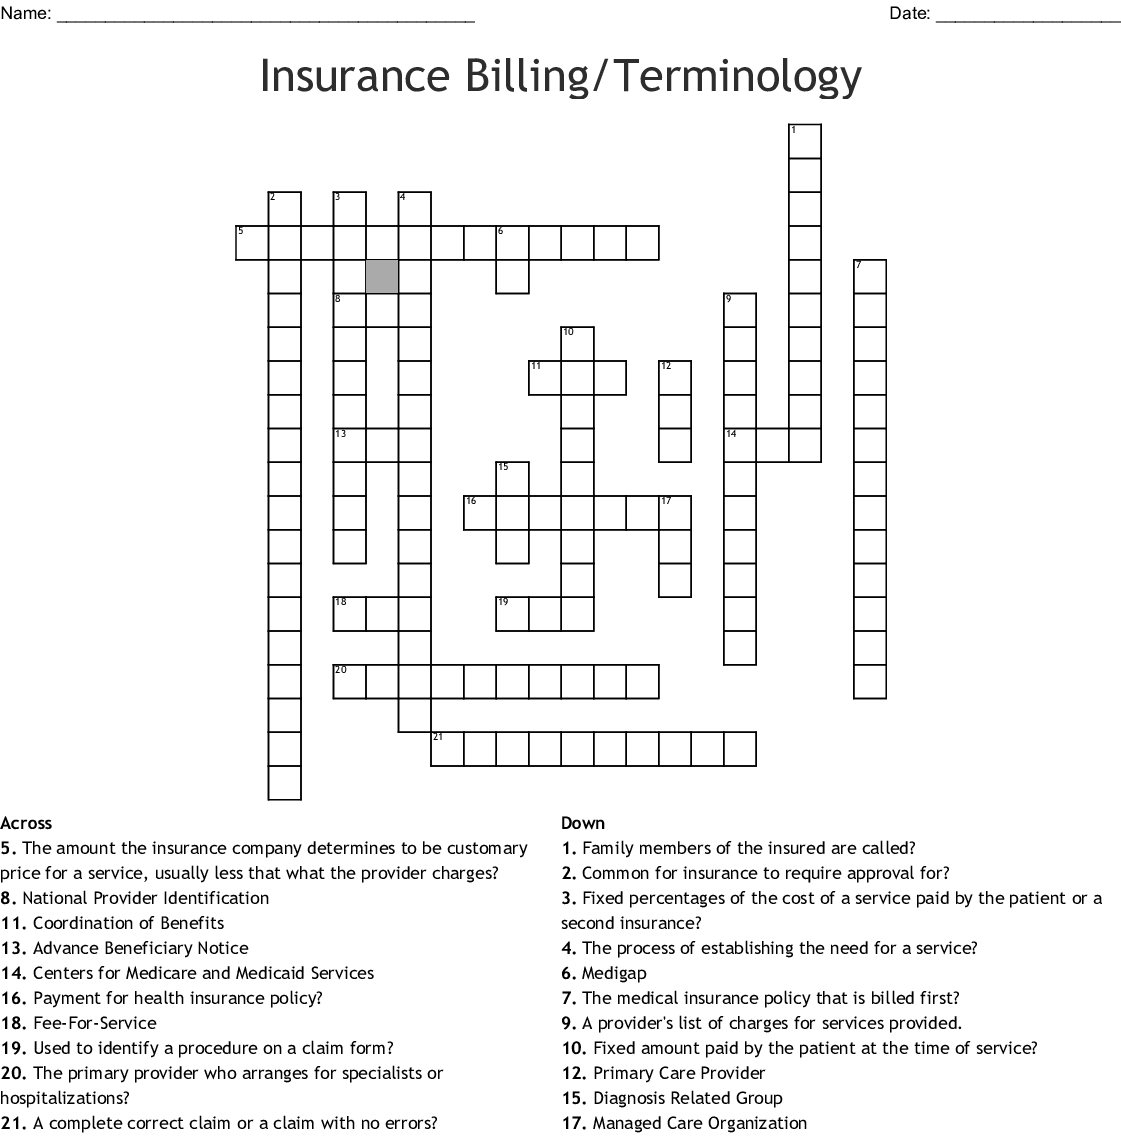 Insurance Terms Crossword Puzzle Answer Key